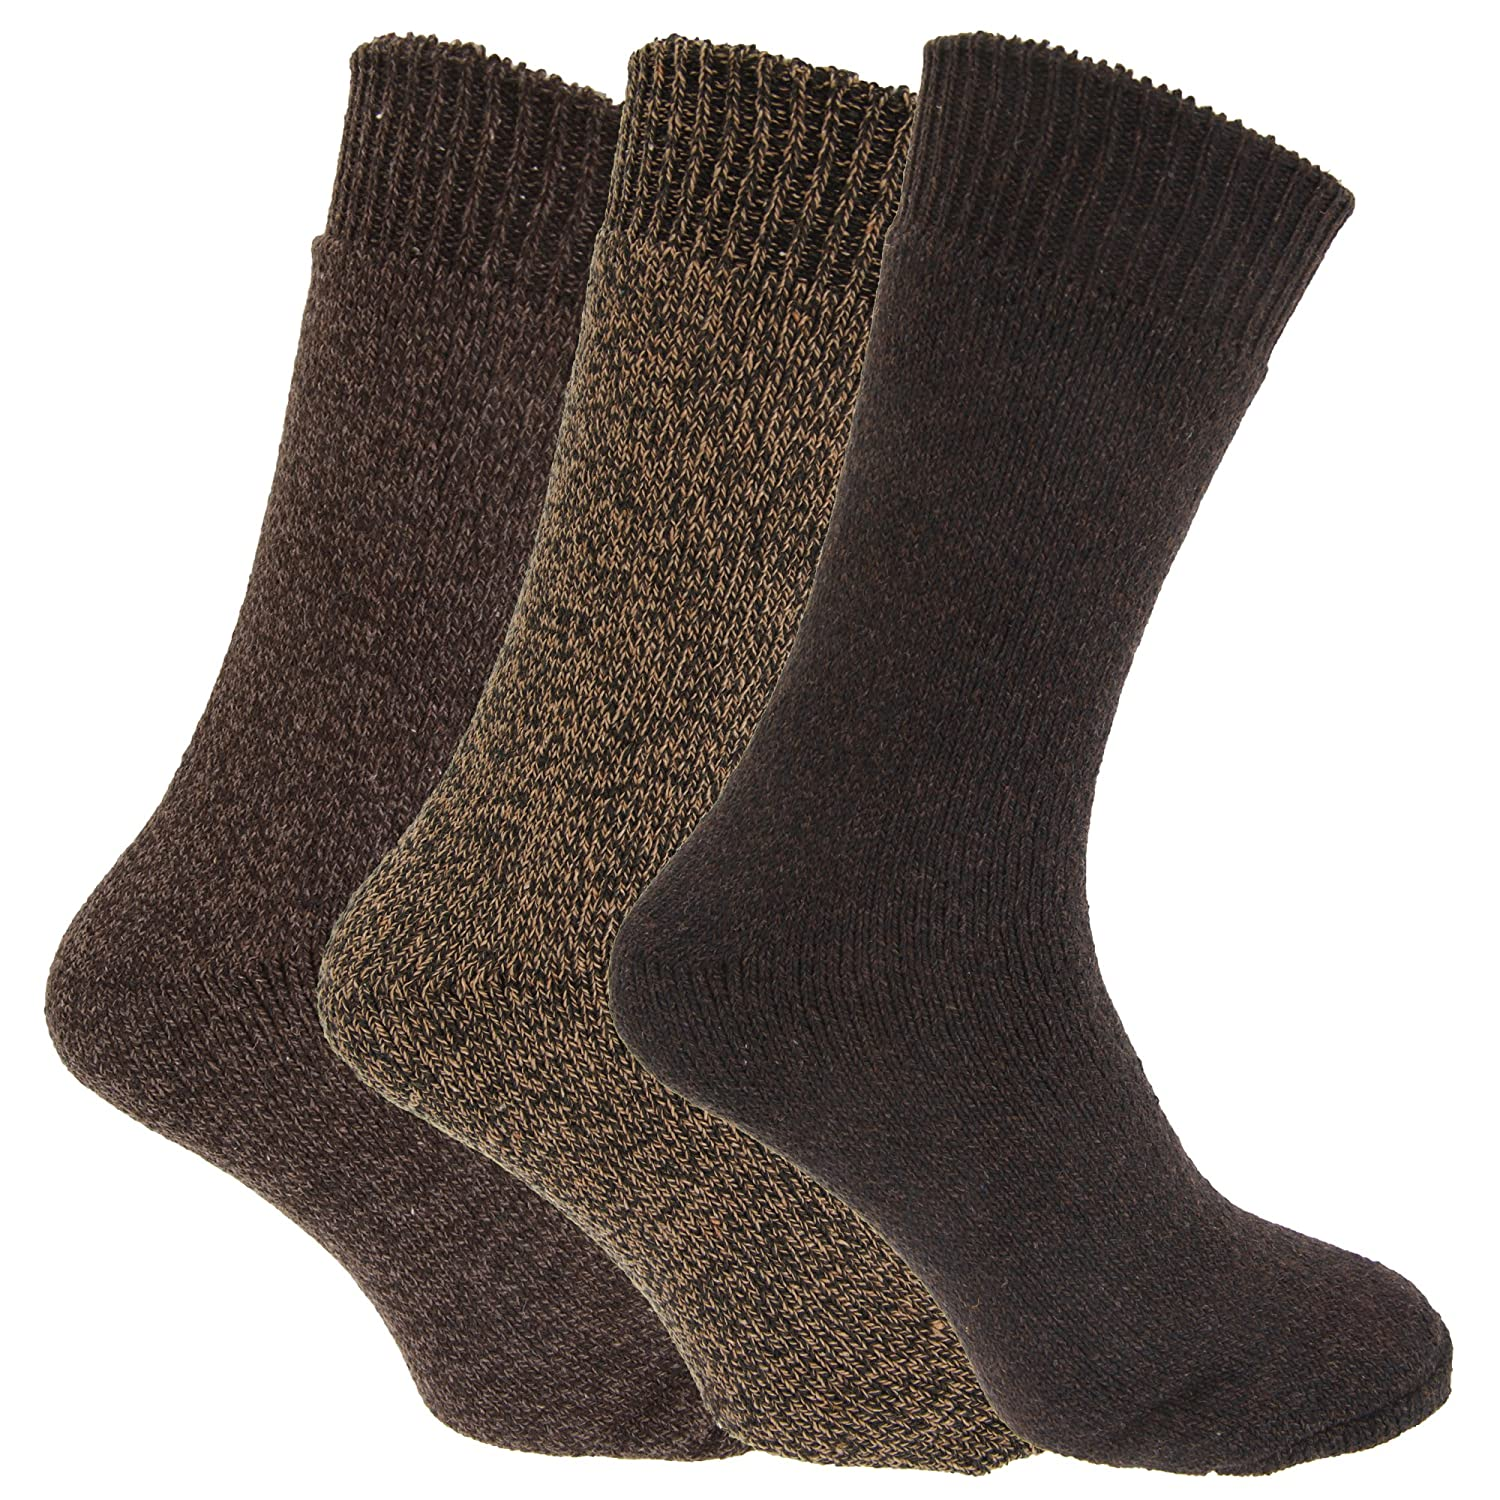 Mens Wool Blend Fully Cushioned Thermal Boot Socks (Pack Of 3) EUR 39-45) (Black) Universal Textiles UTMB430_4